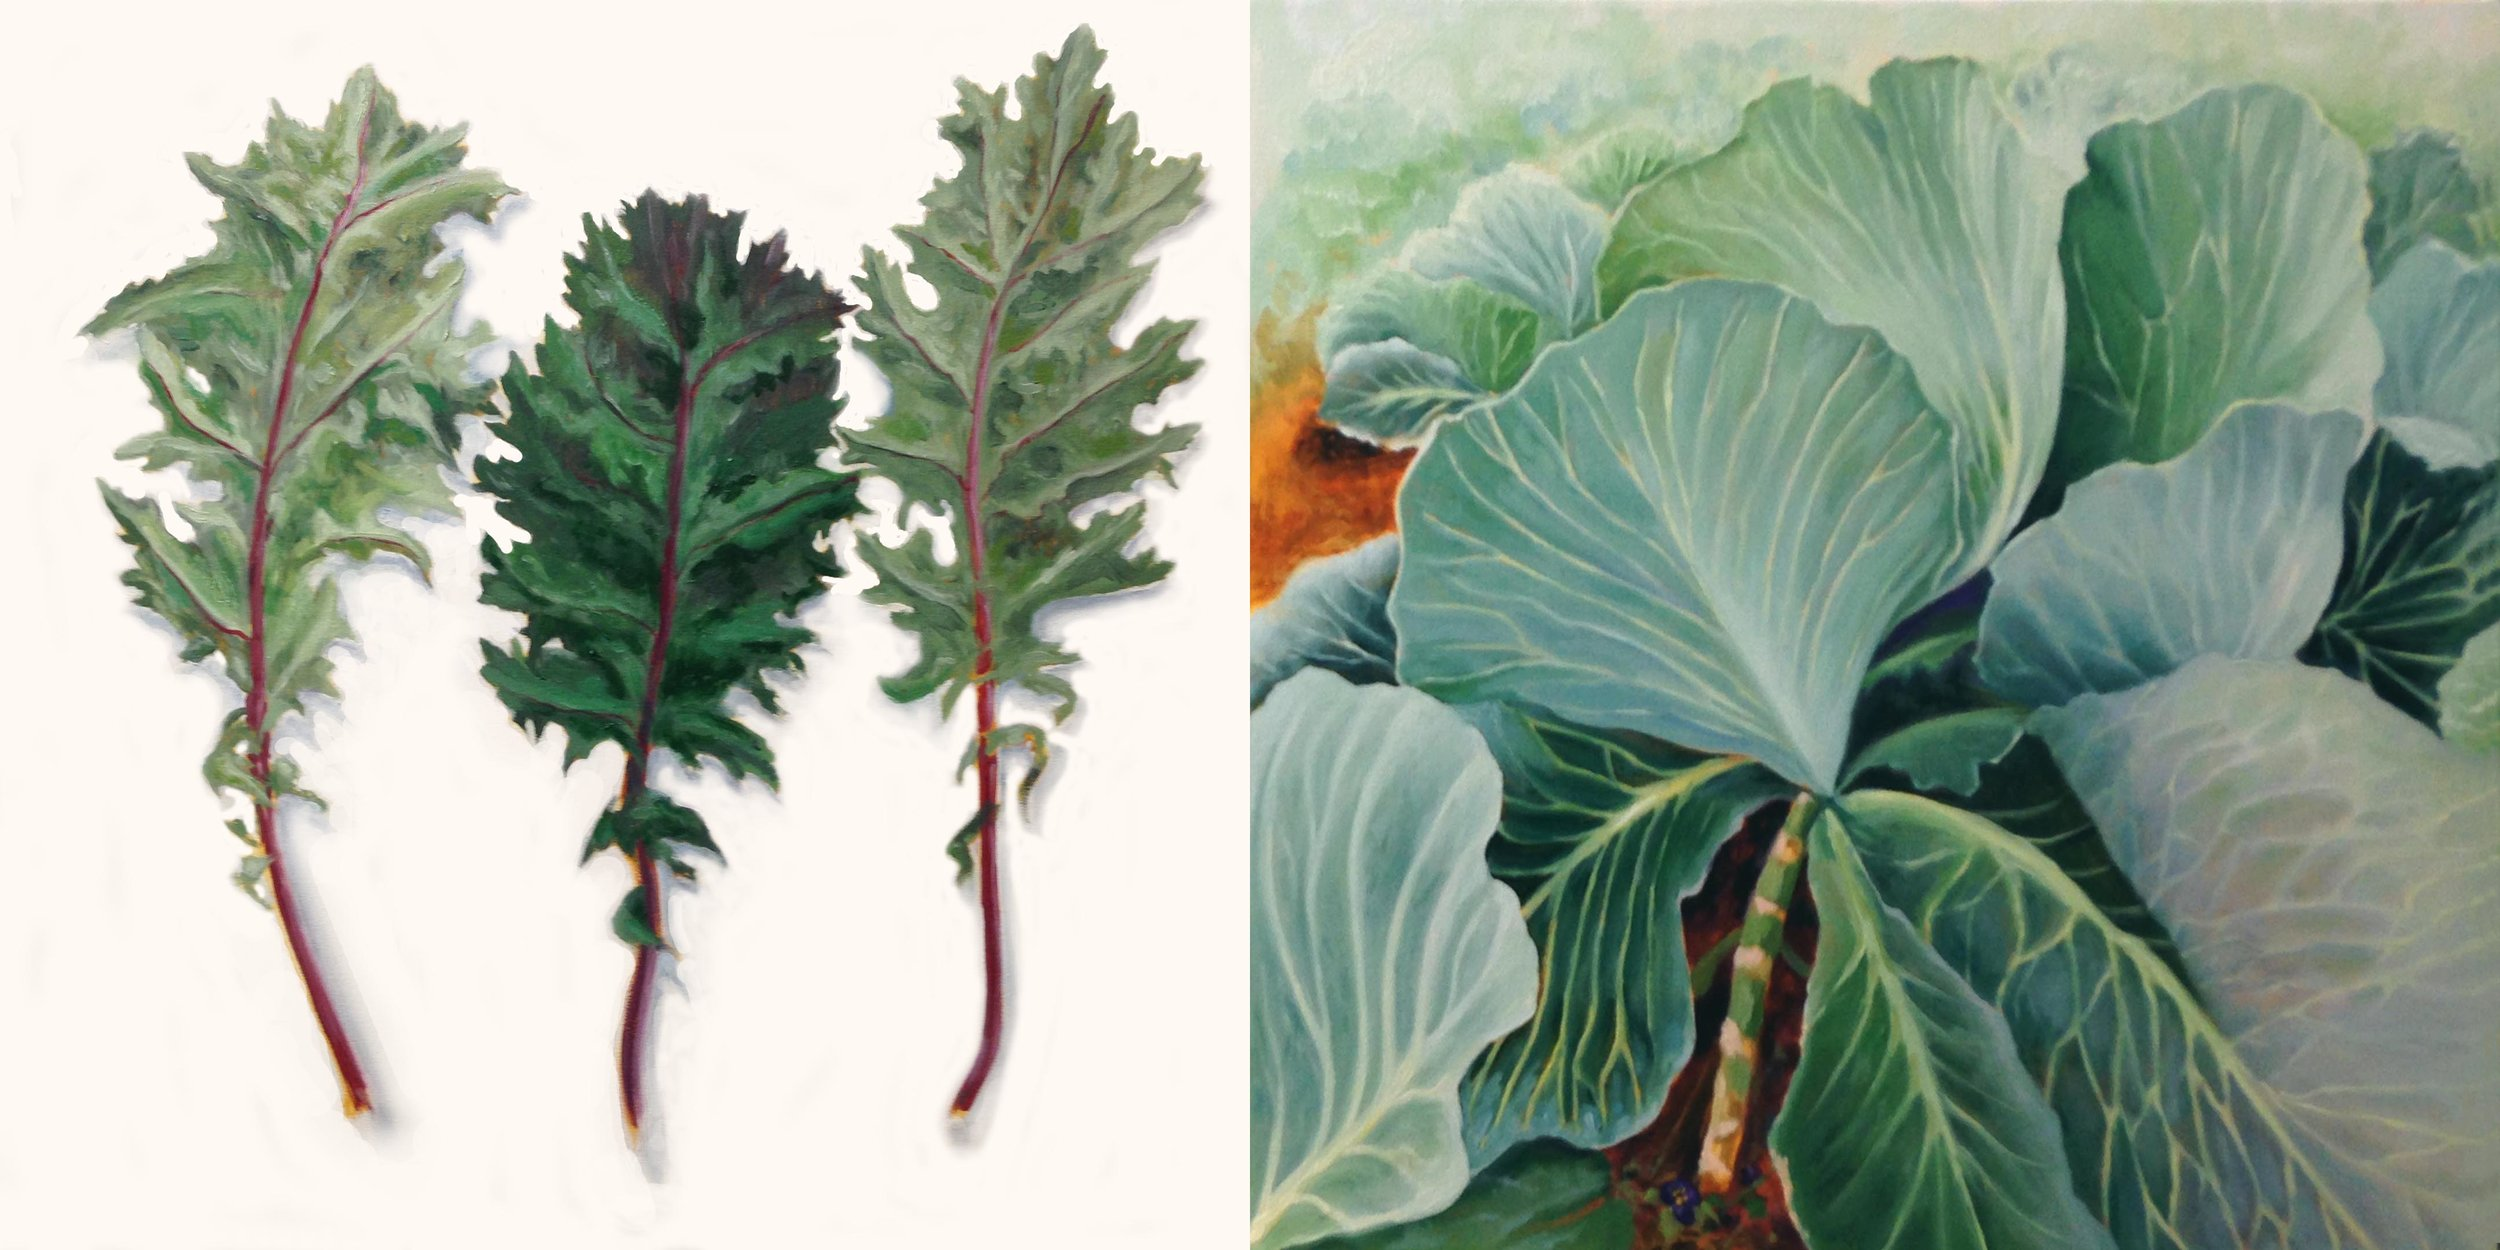 Kale & Cabbage Patch , 2018, oil on canvas, 30 x 60 inches (one canvas)